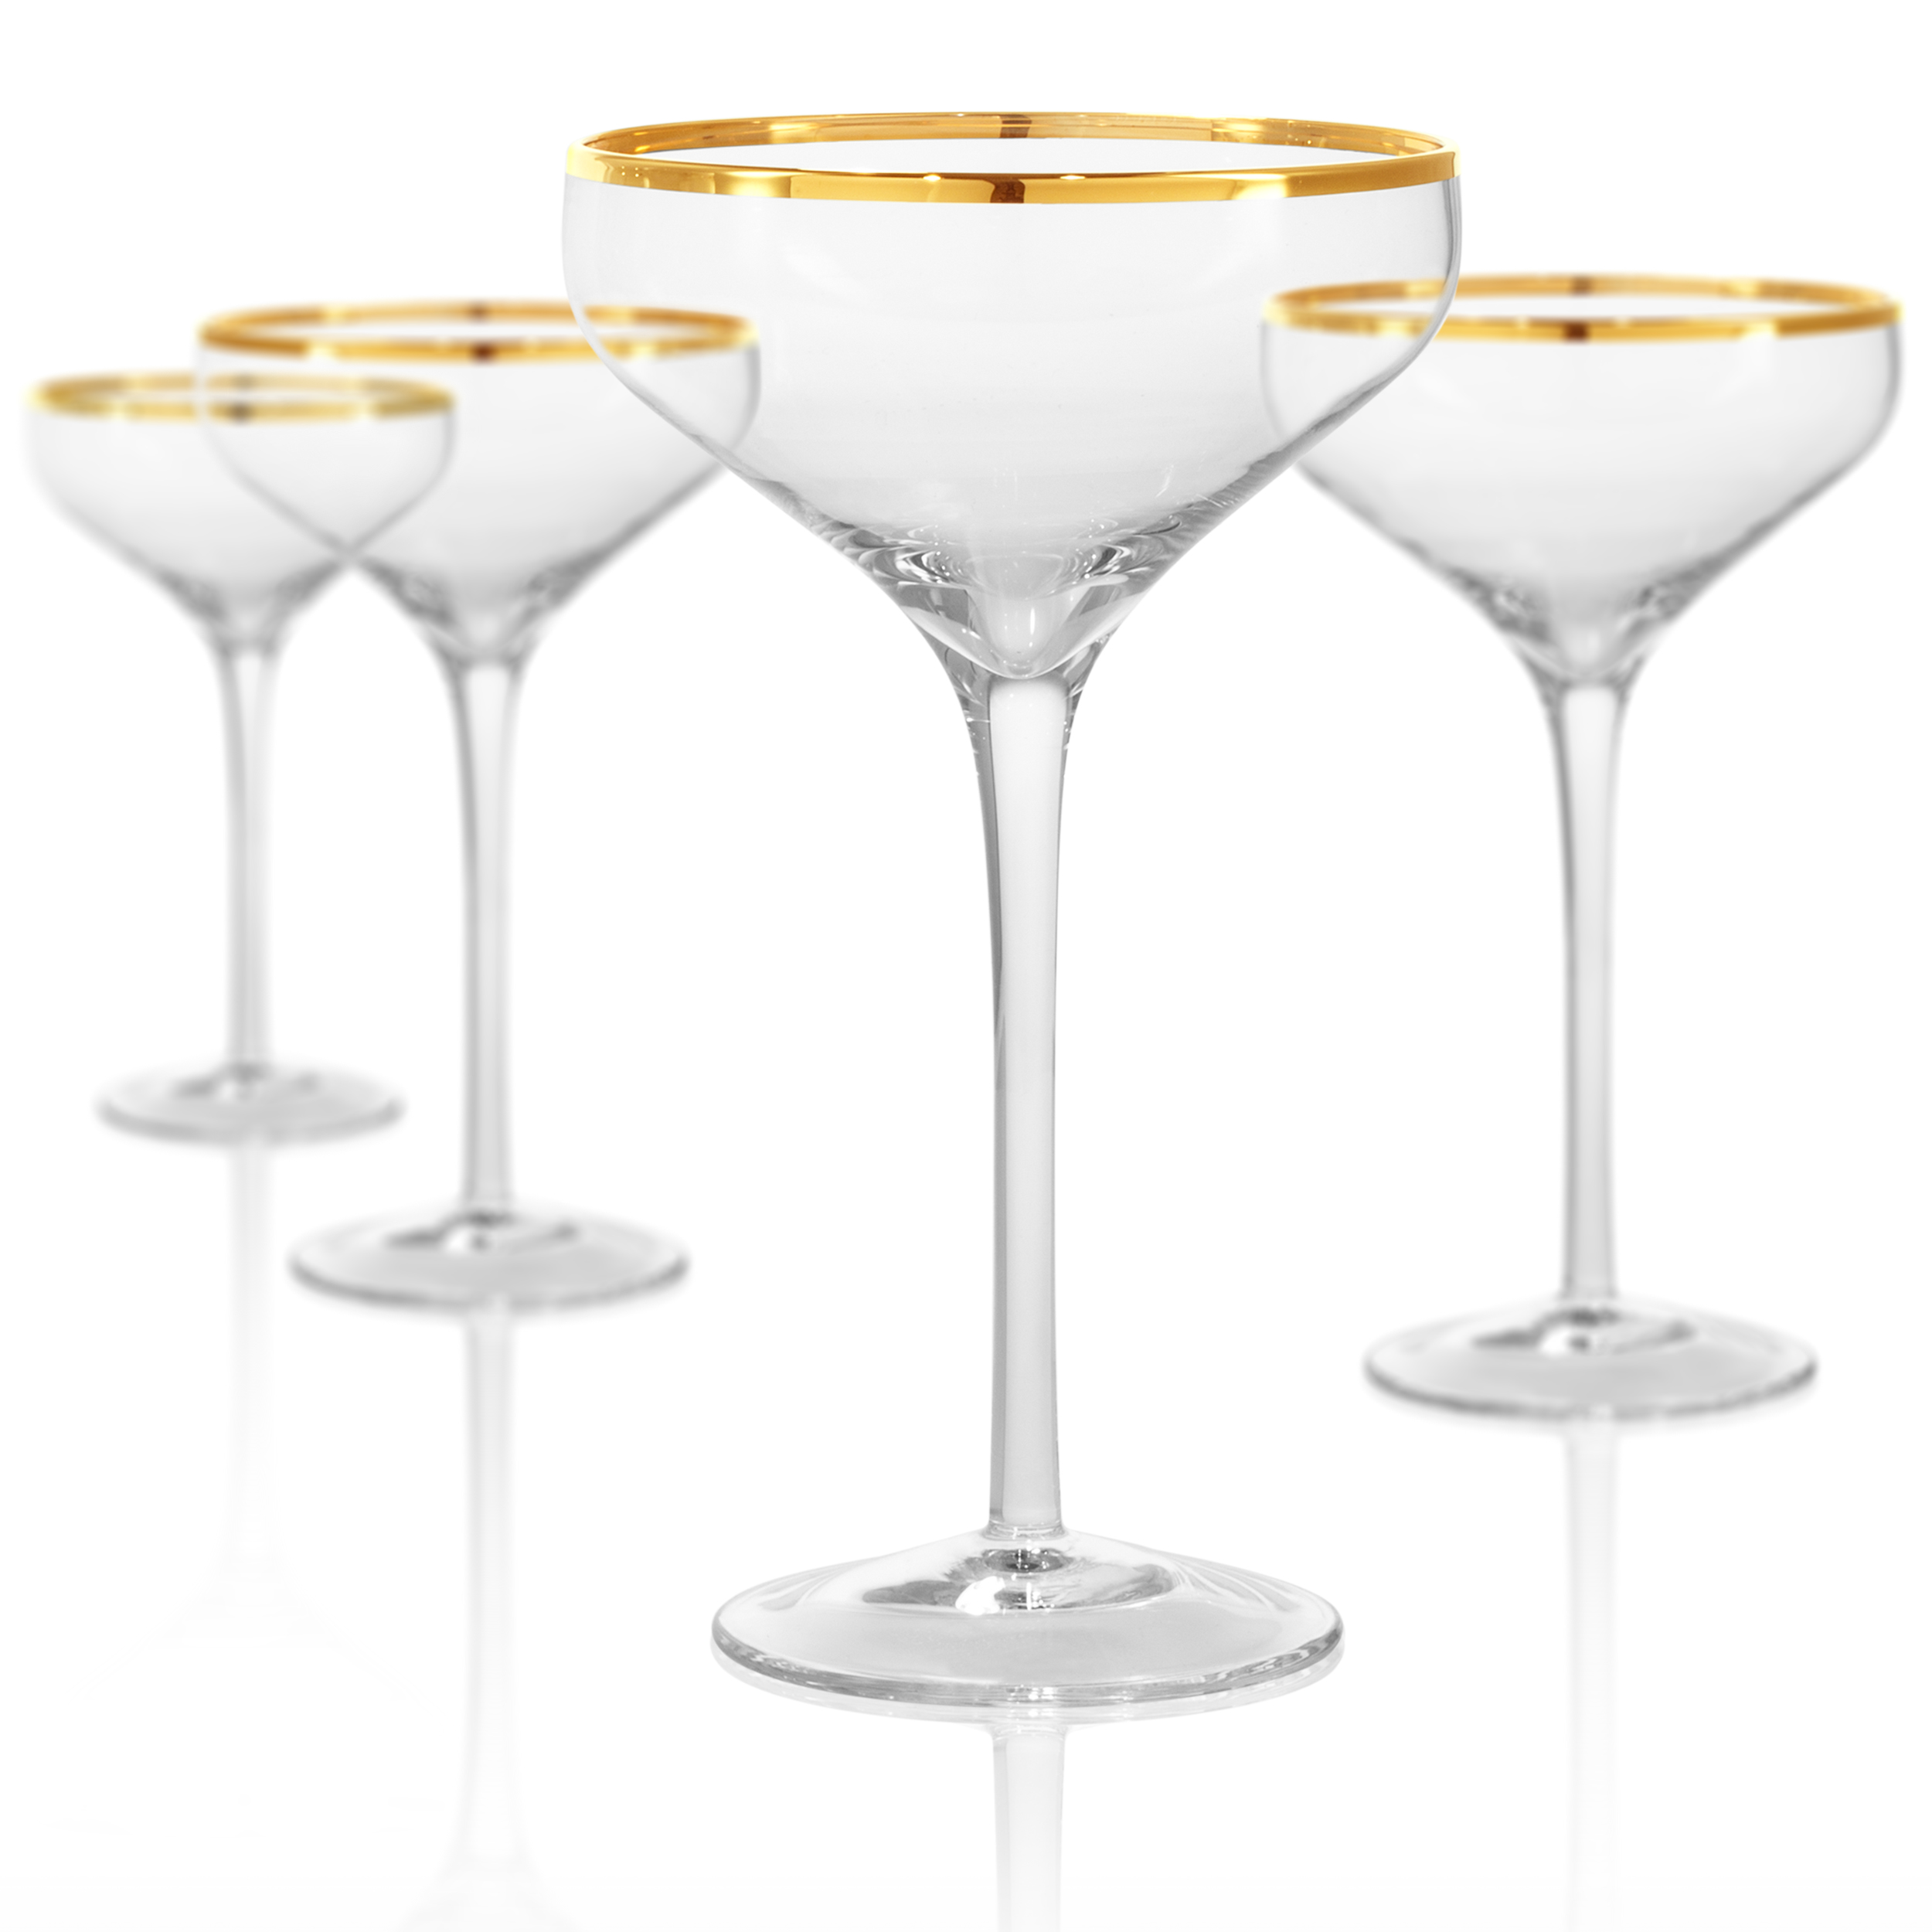 Gold Band Coupe / Saucer Champ Glass 10Oz, Set Of 4